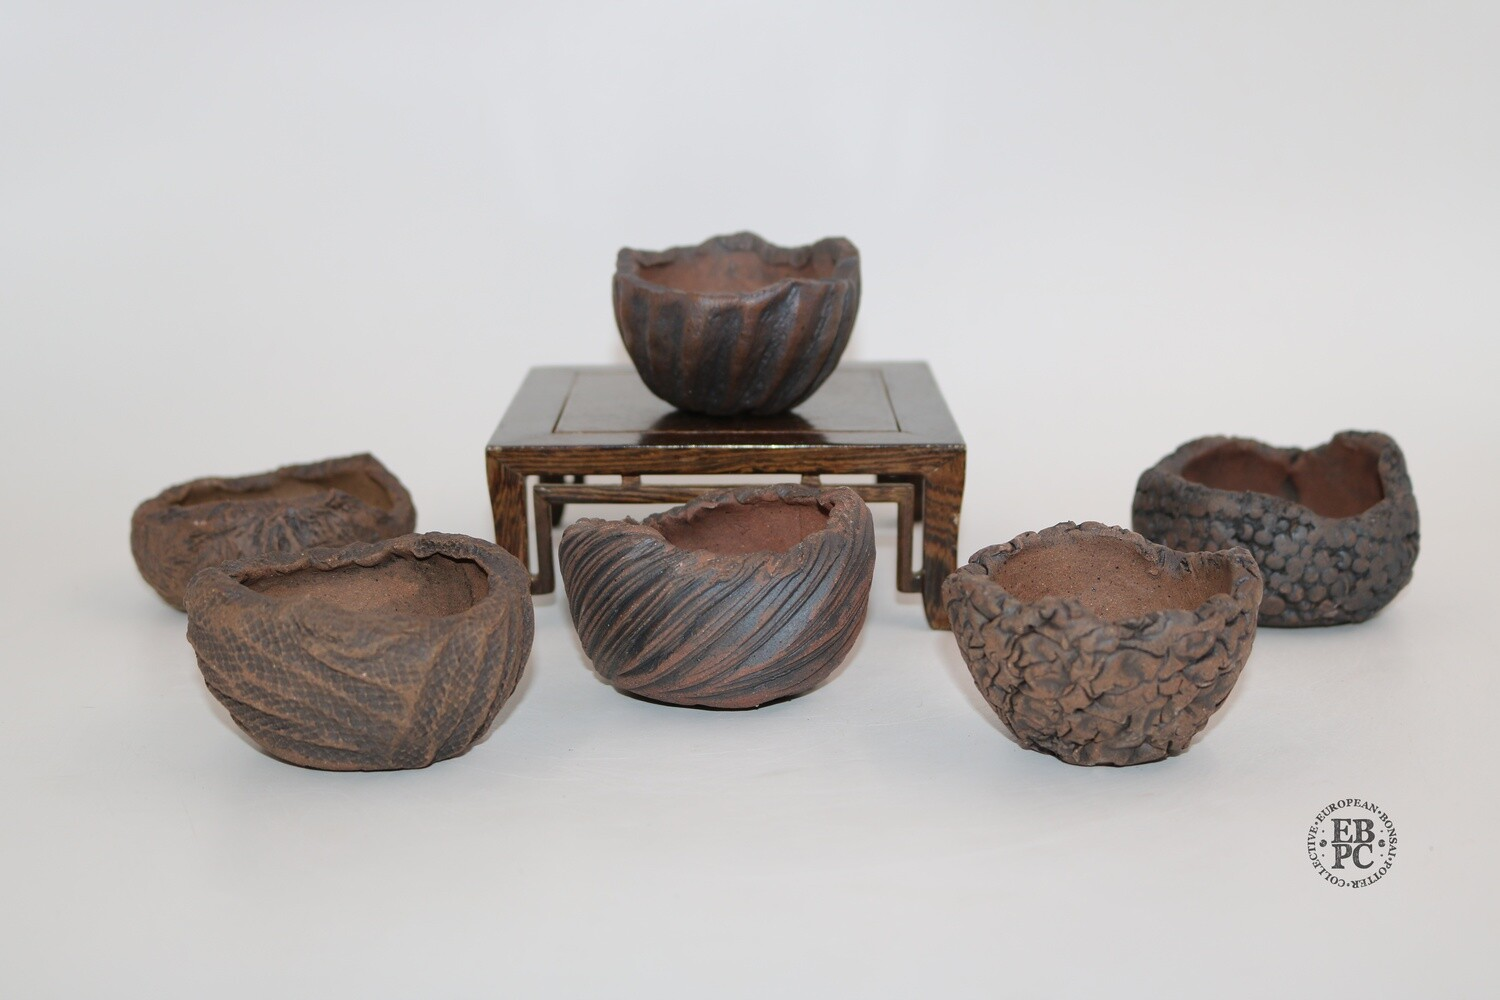 Walsall Studio Ceramics - 6cm to 8cm; Accent / Mame; Round; Unglazed; Brown; Fantastic patterns; EBPC Stamped